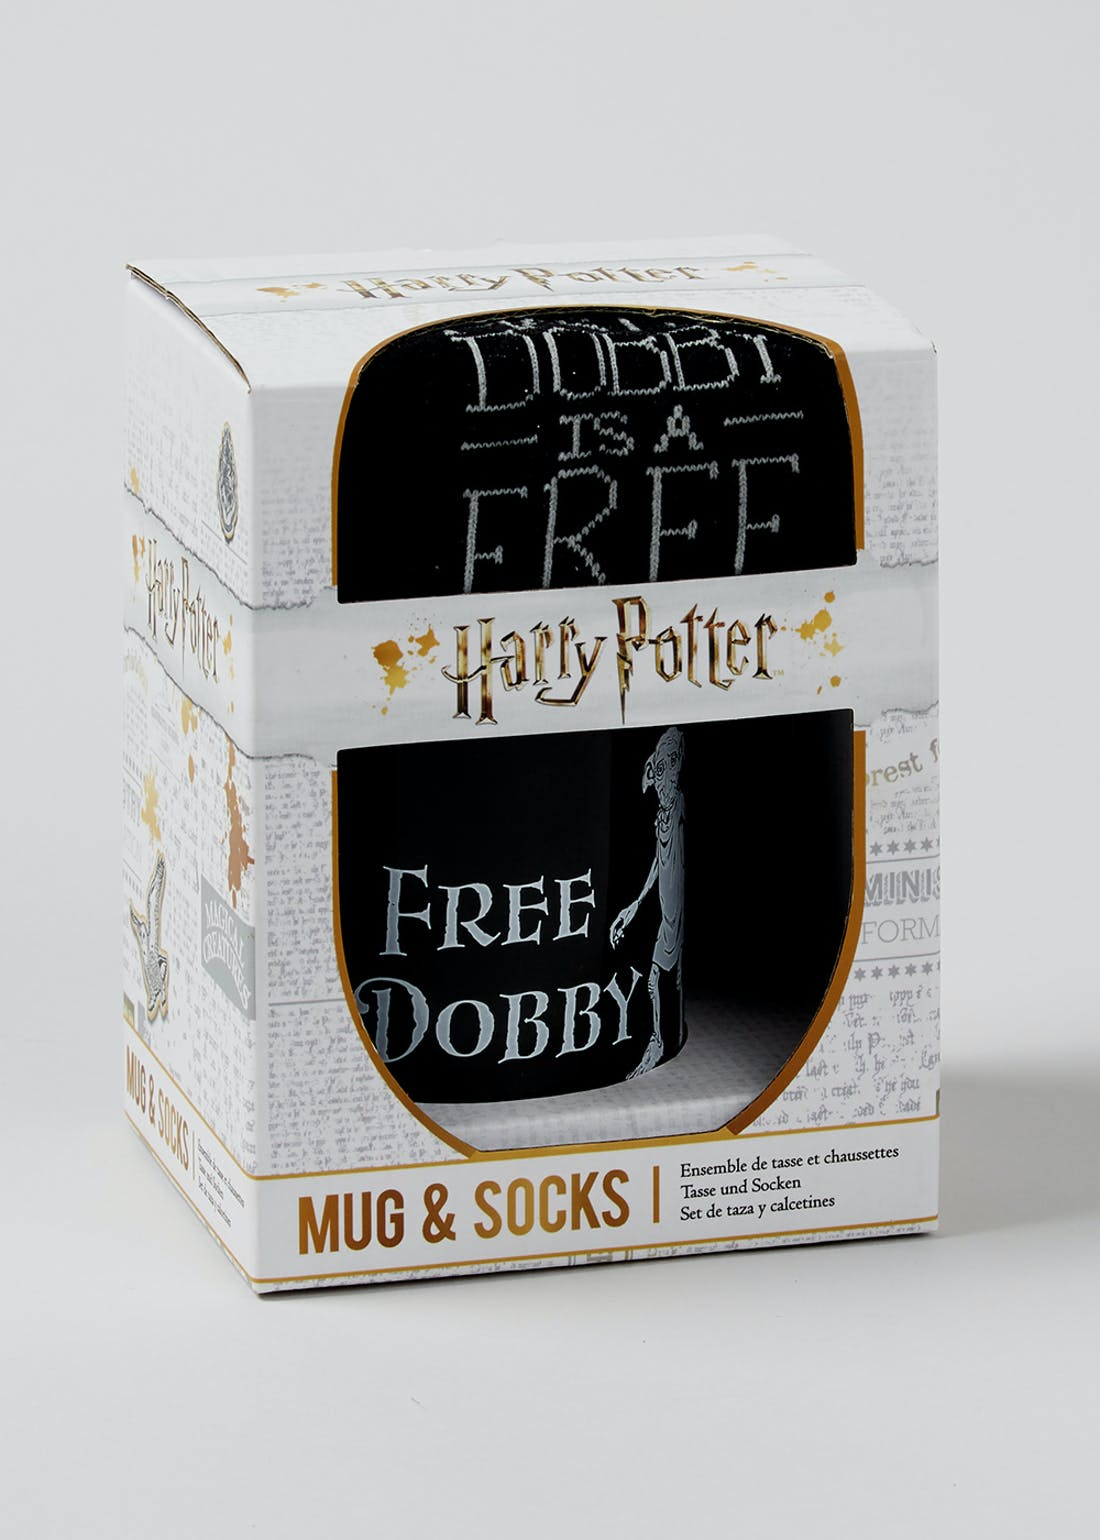 Harry Potter Dobby Mug & Socks Set (16cm x 12cm x 10cm)